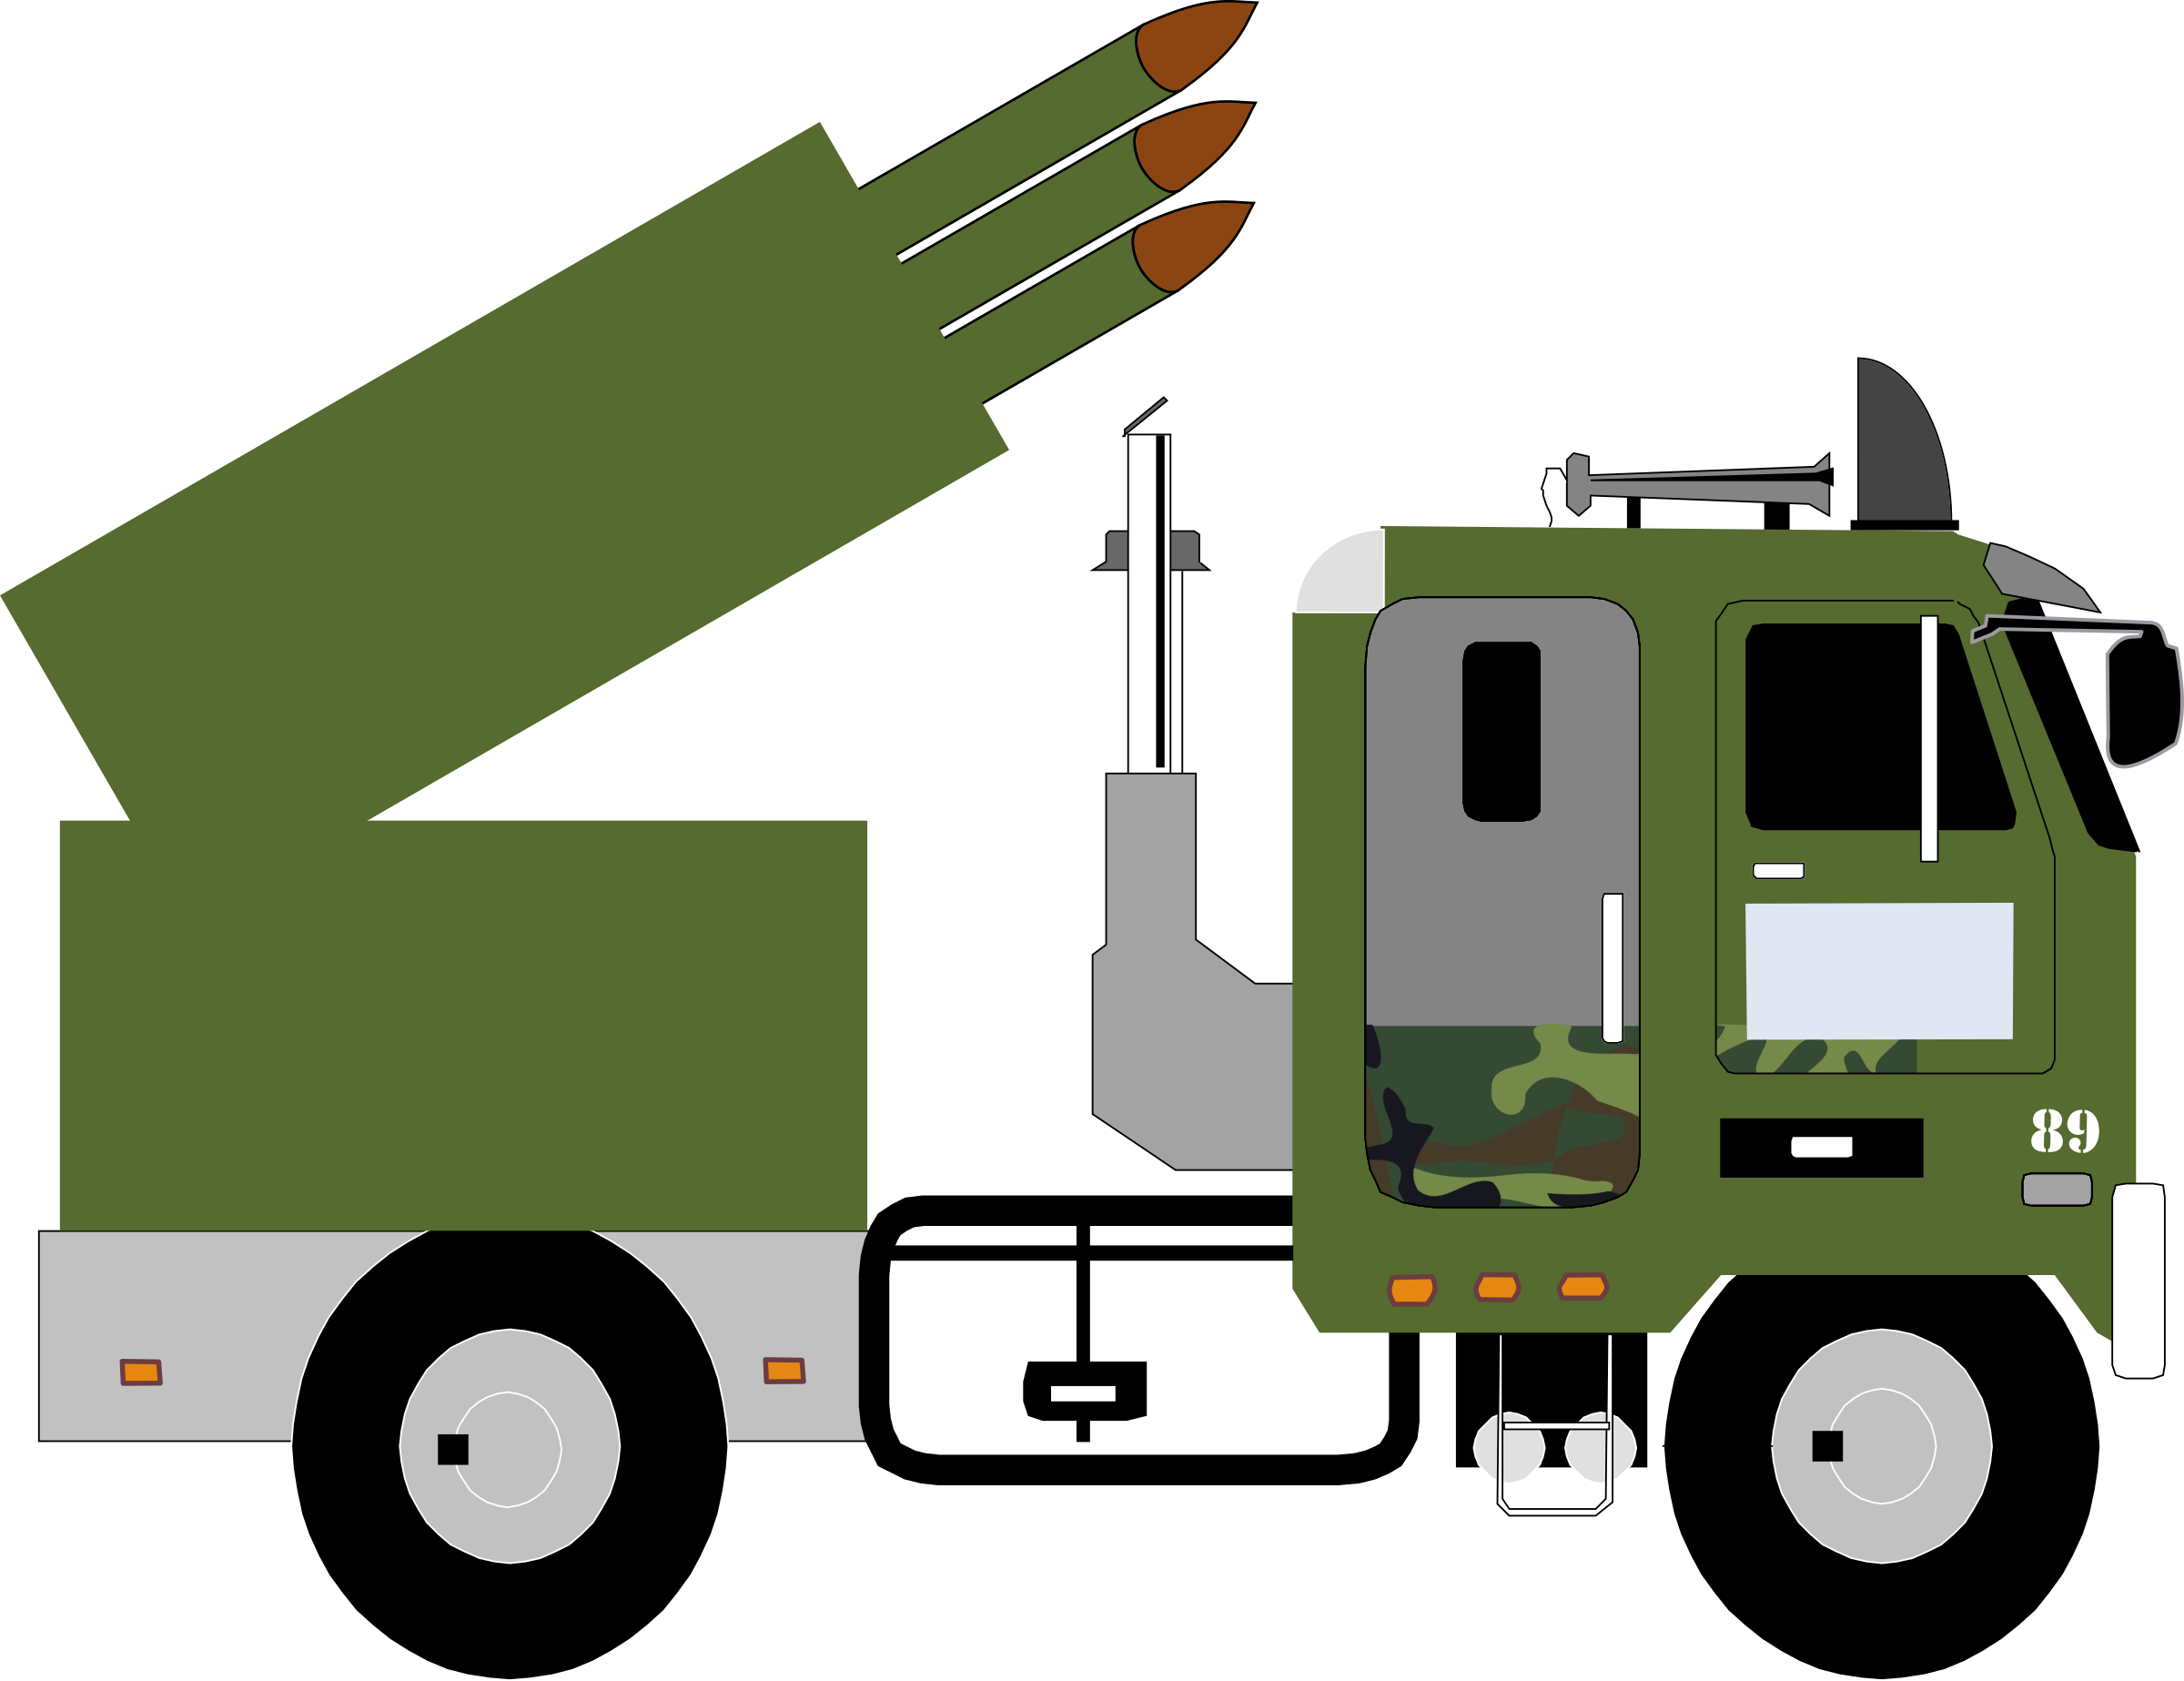 Missile v big image. Military clipart military truck